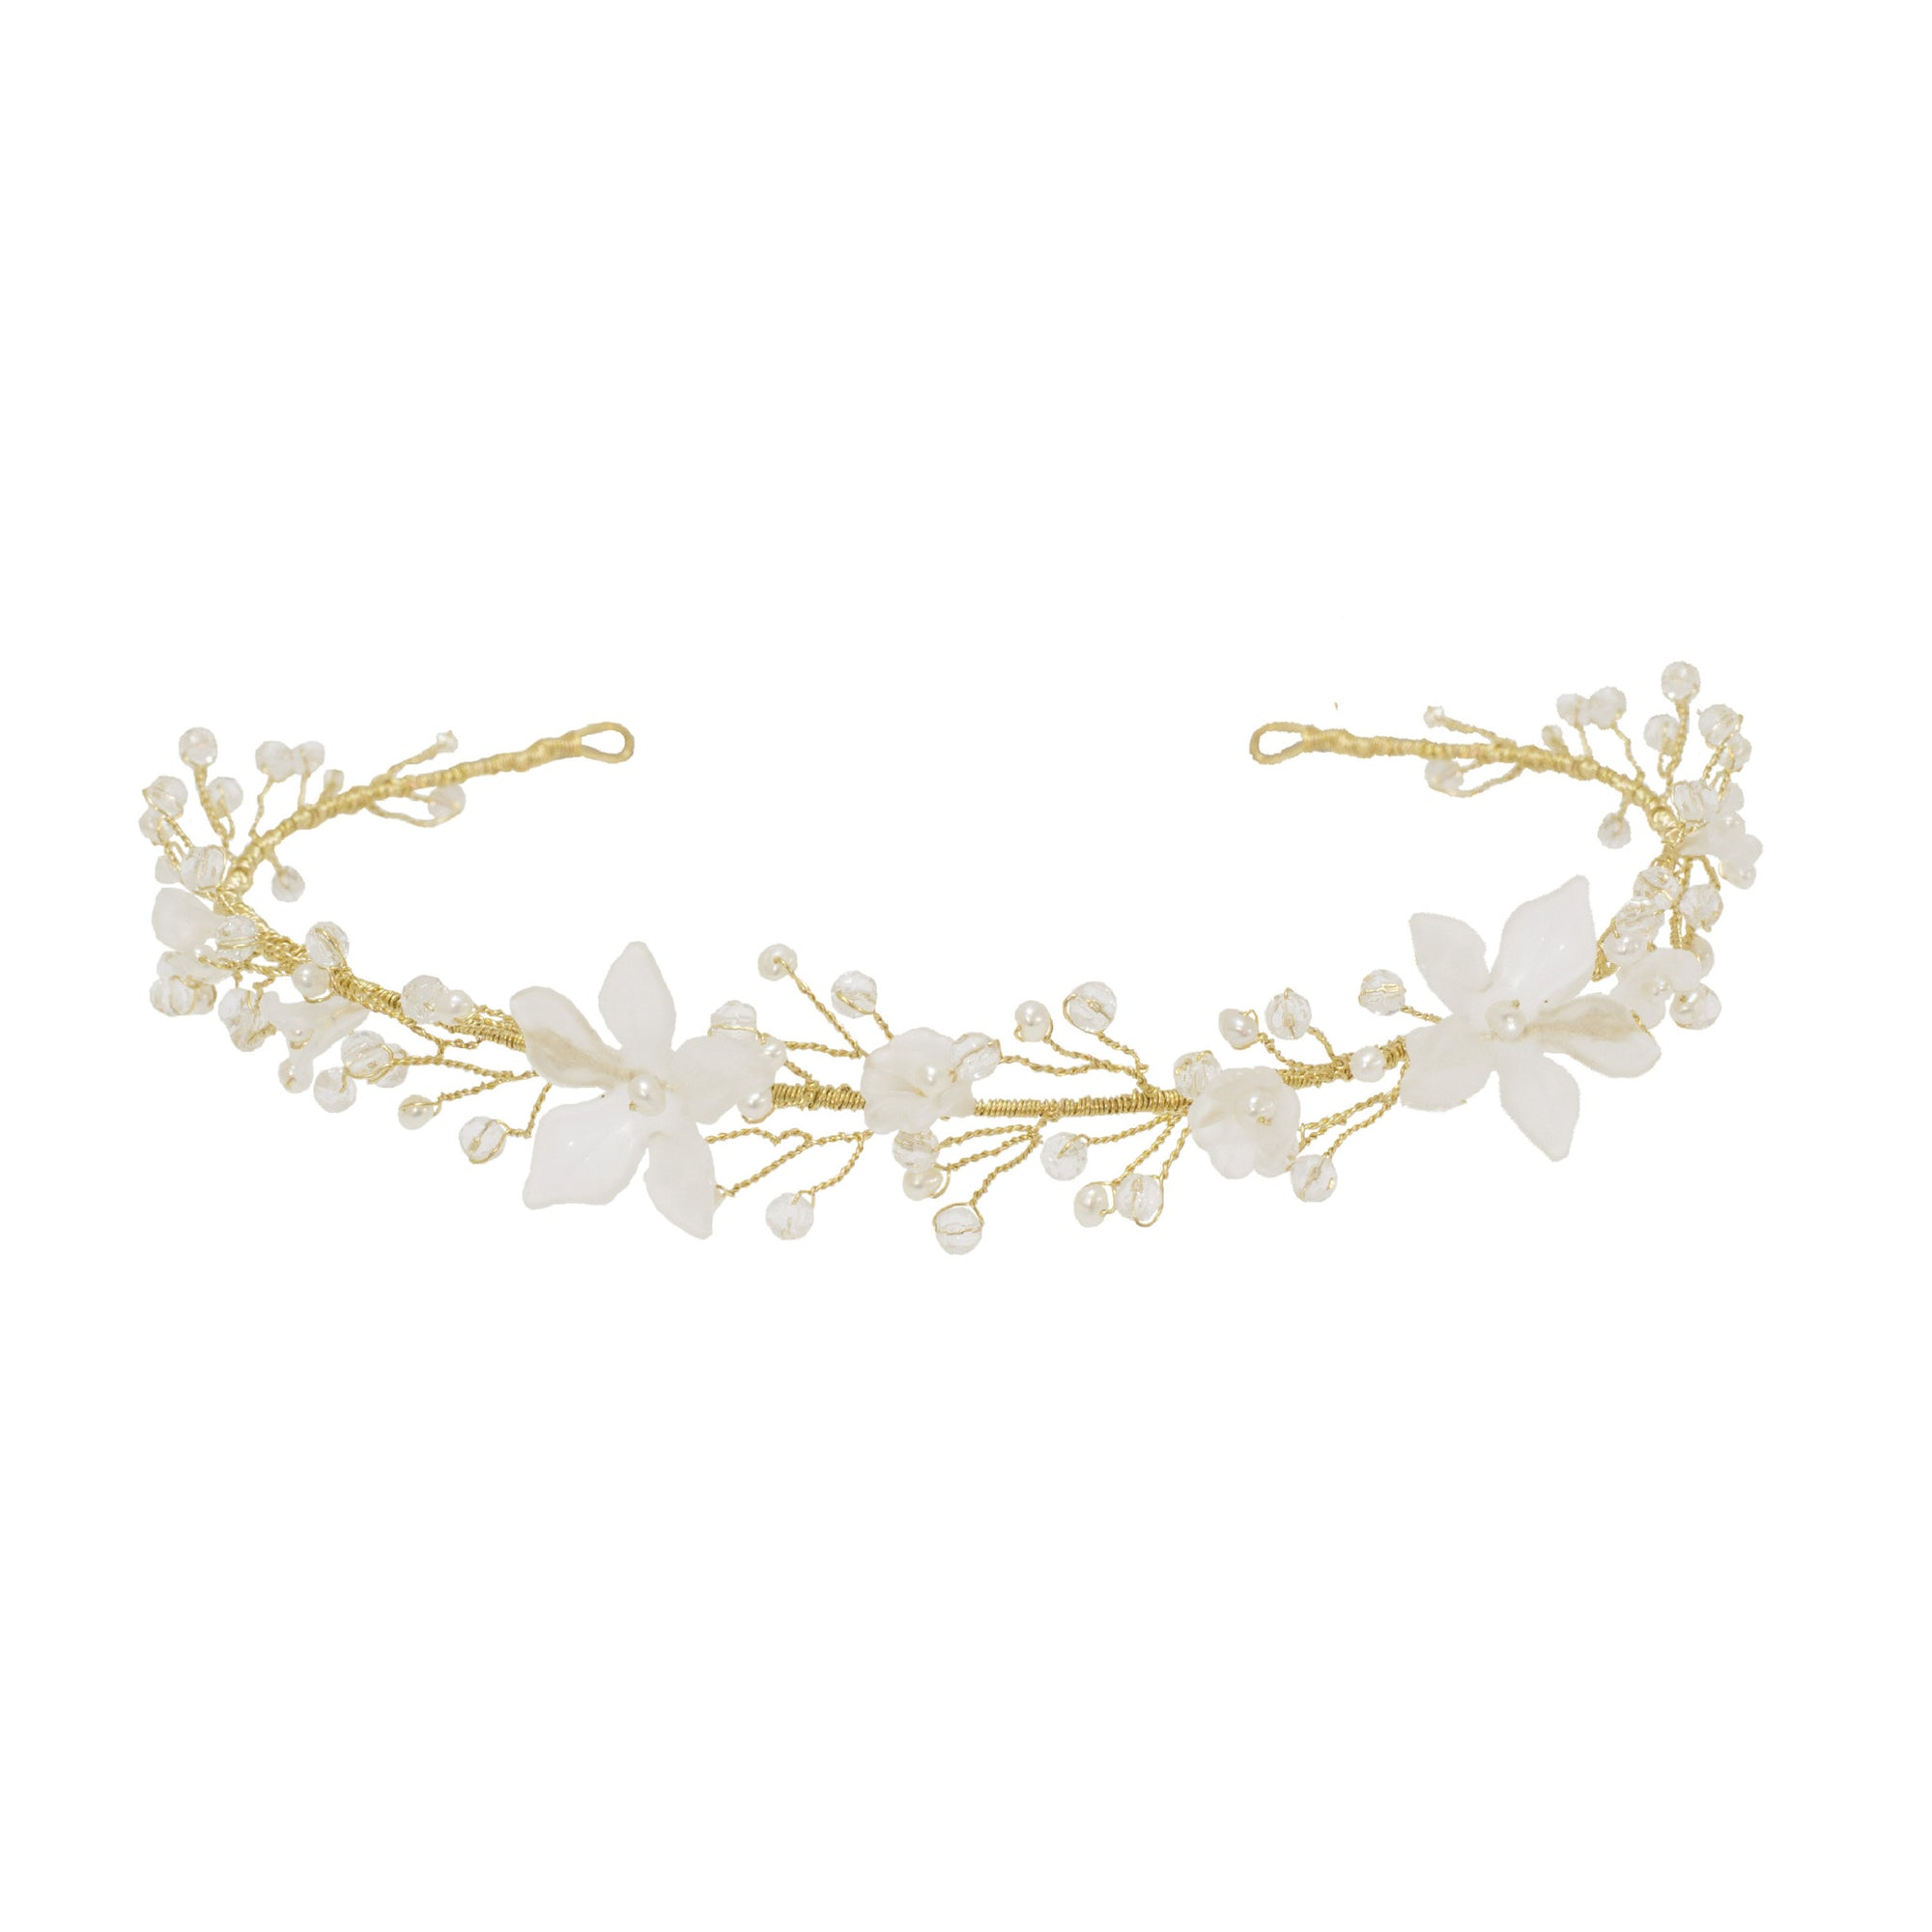 We have just added Delia our everlasting floral hair vine in Gold!